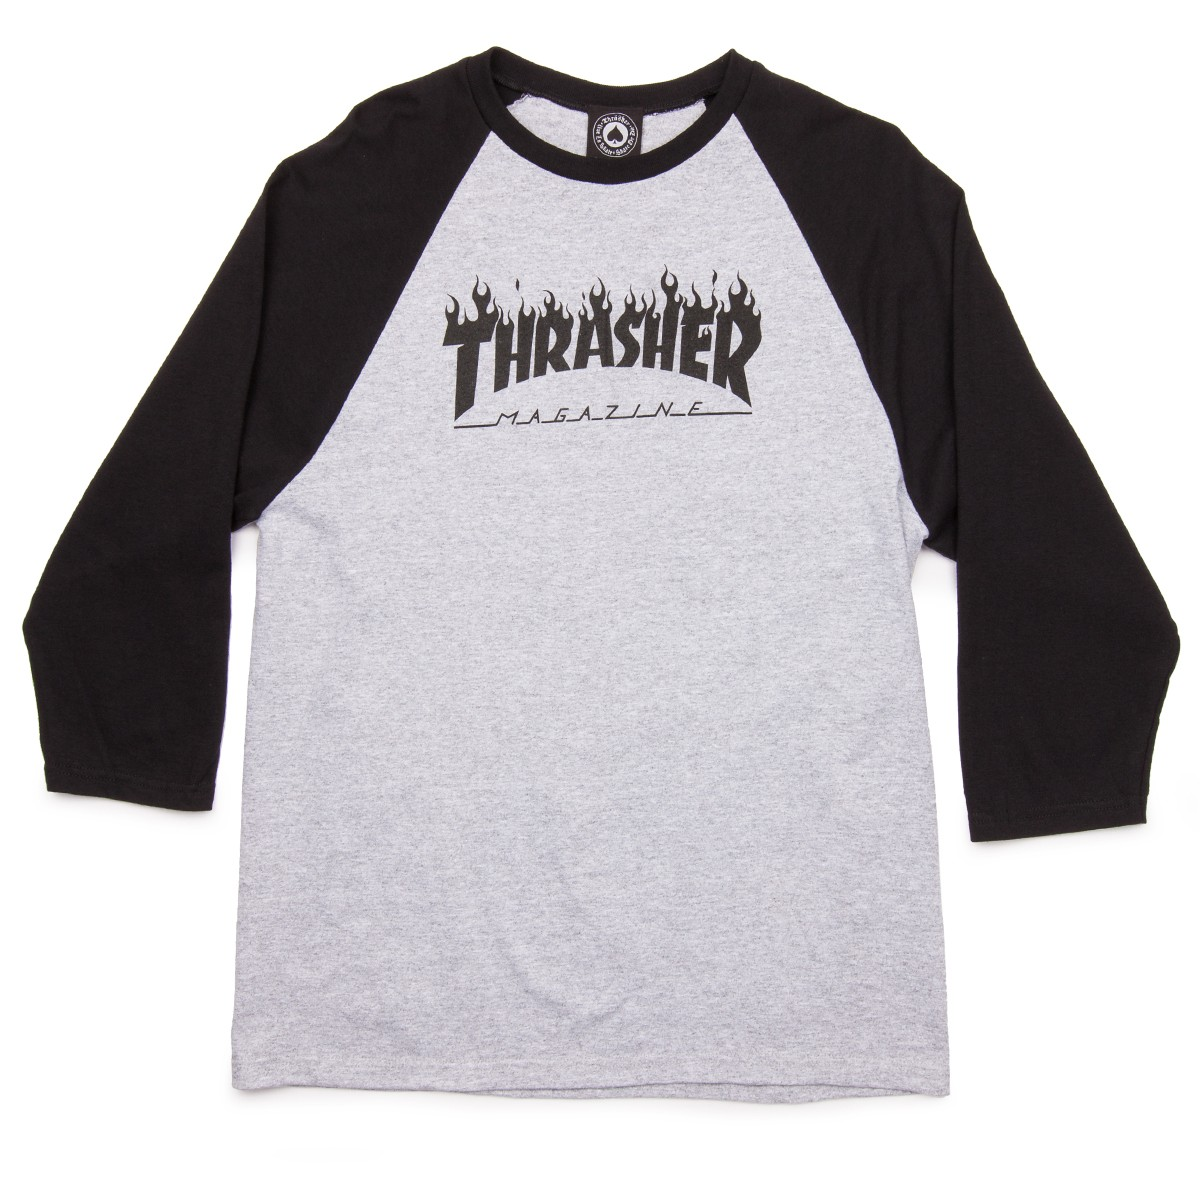 70e1b17cd692 thrasher-flame-raglan-t-shirt-grey-black-1 4.1506992979.jpg